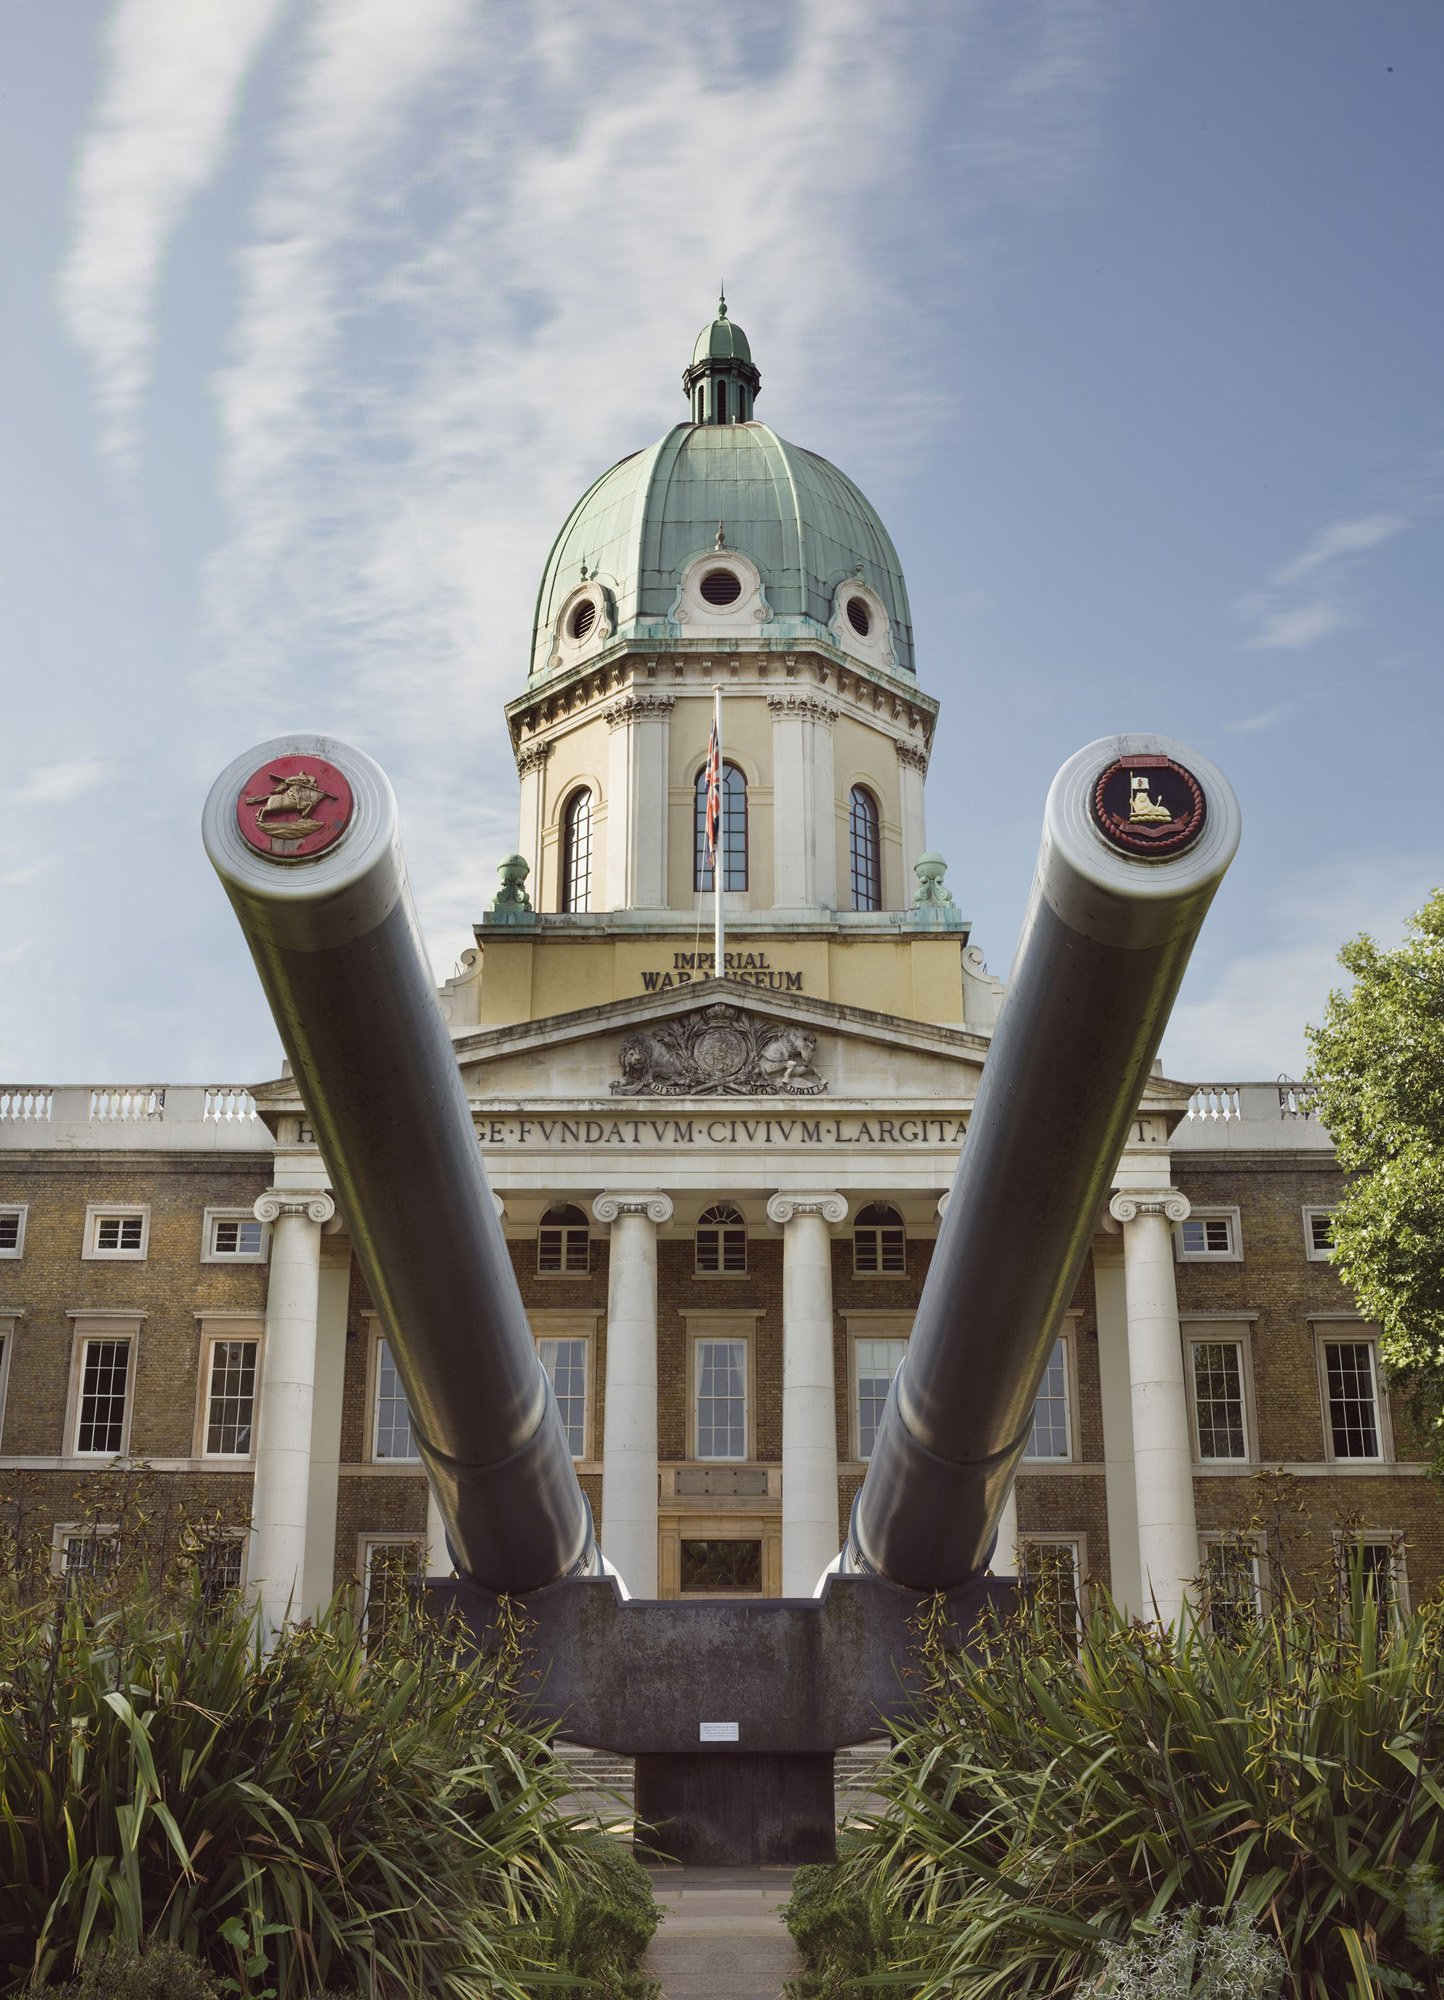 Imperial War Museum Fire Protection